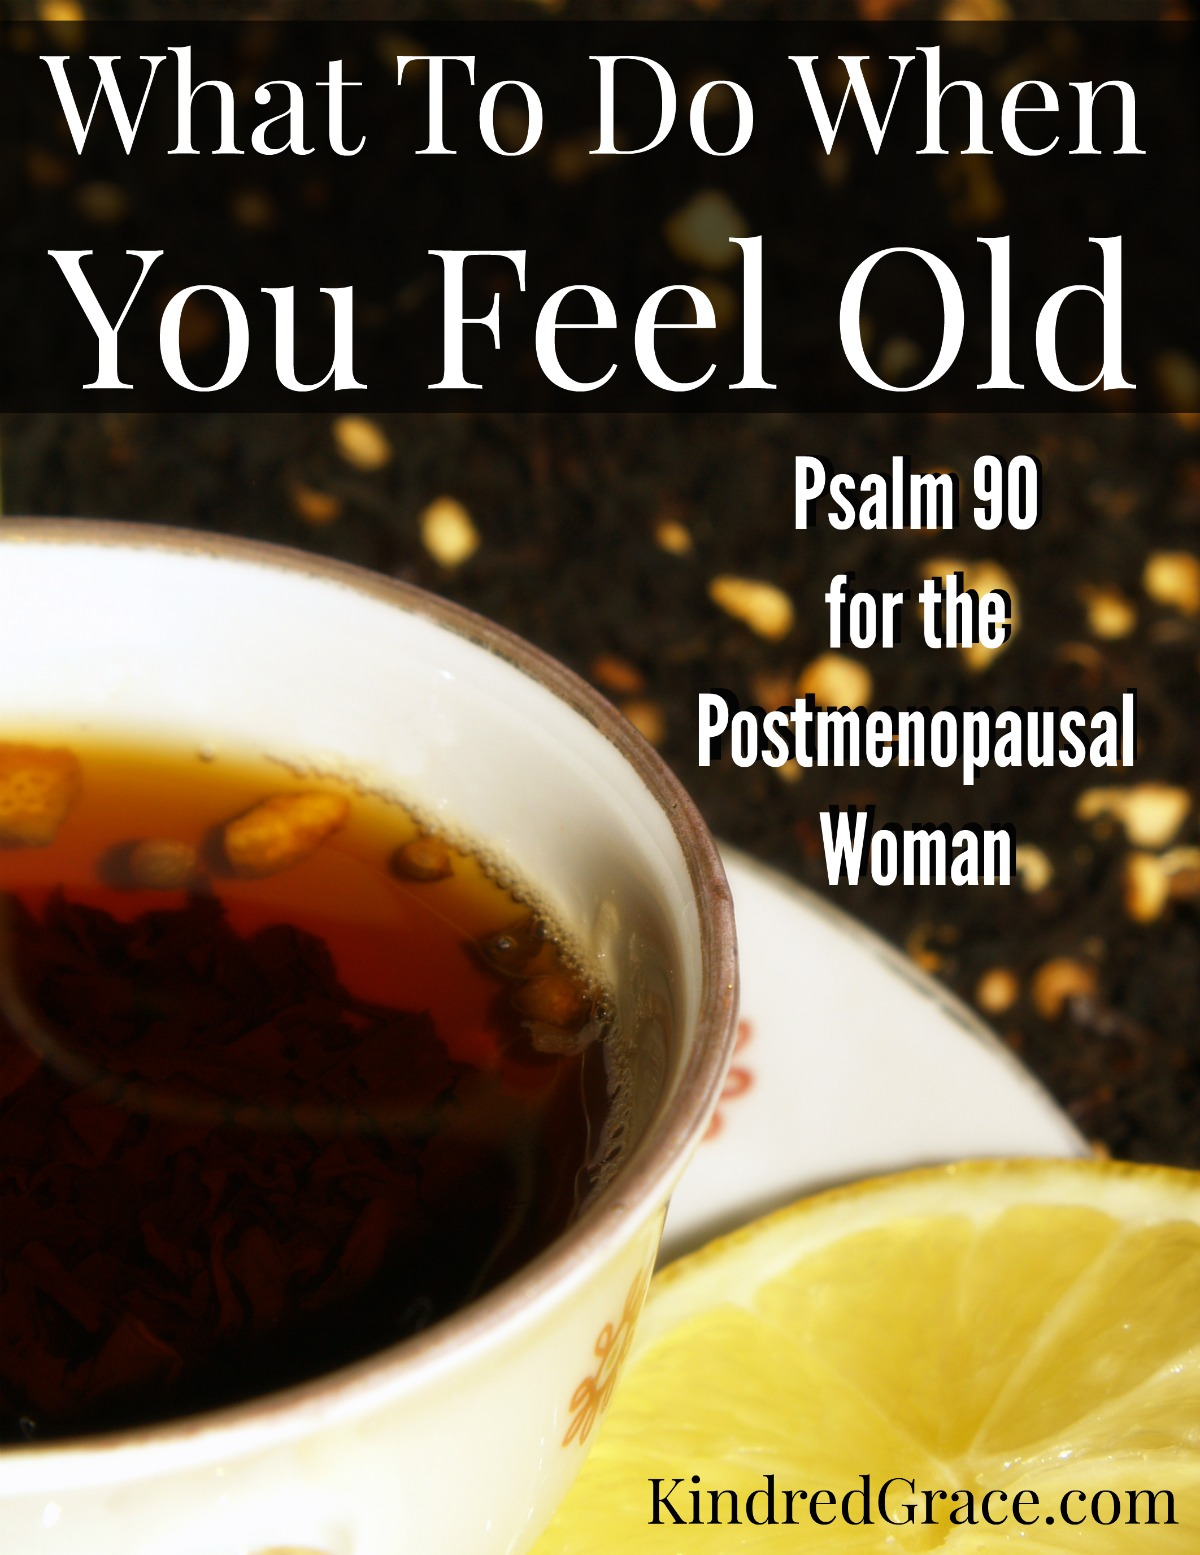 What To Do When You Feel Old (Psalm 90 for the Postmenopausal Woman)